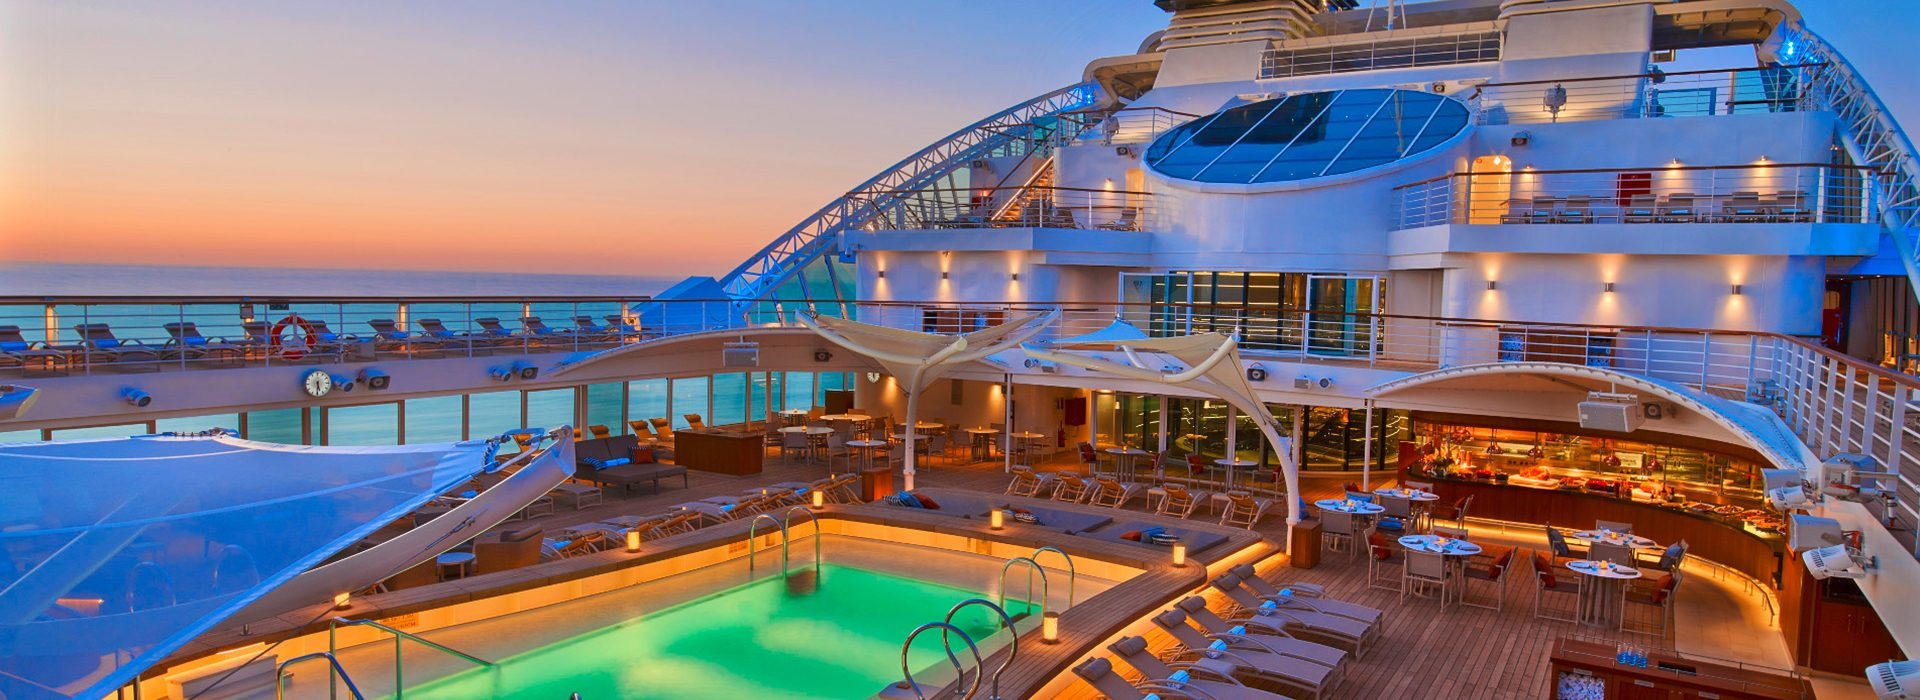 Seabourn_Encore_PoolDeckAtNight